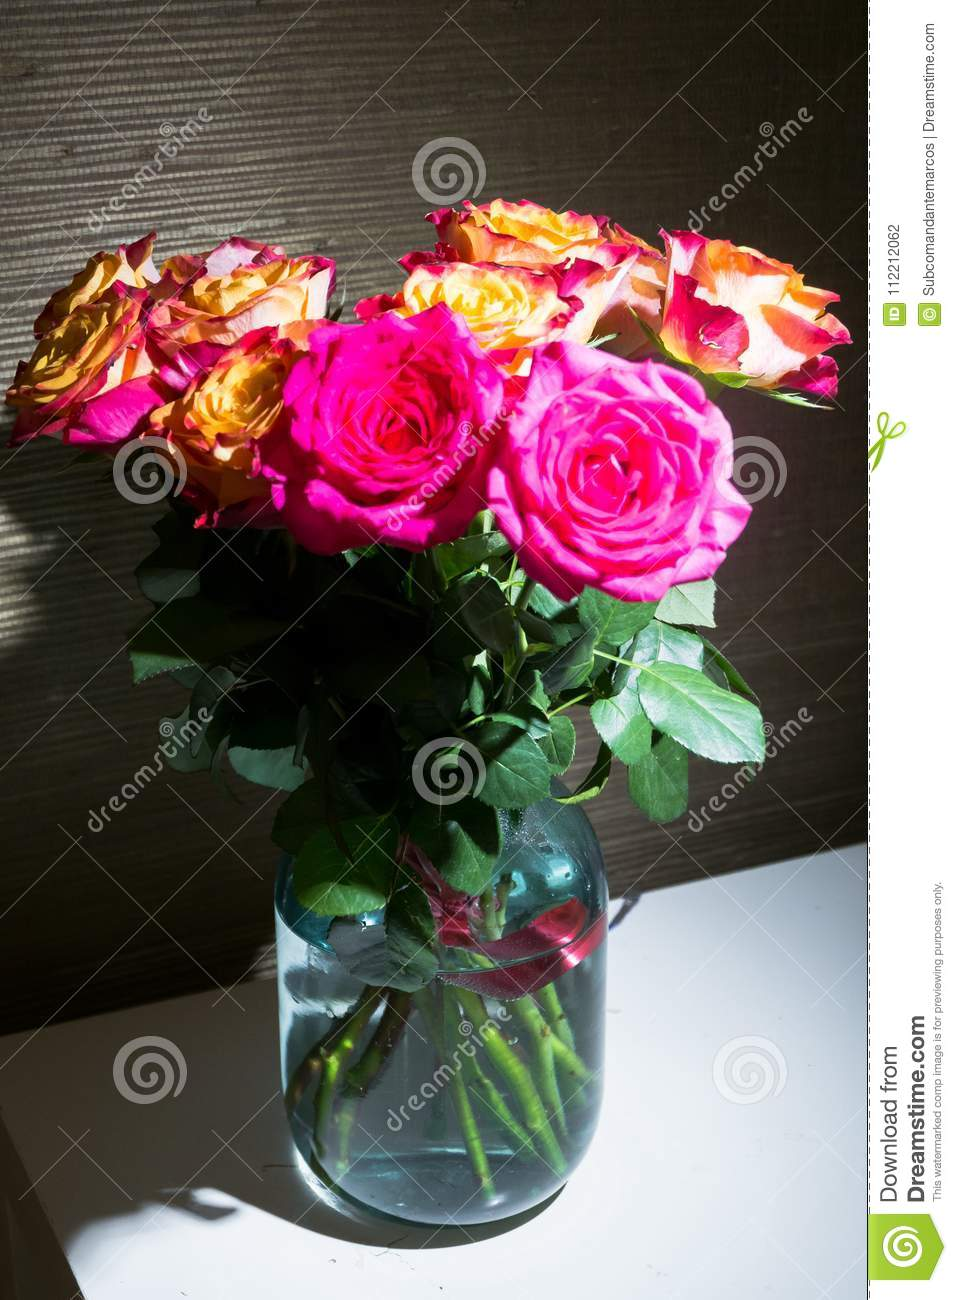 Festive Bouquet Of Fresh Roses With Original Yellow And Crimson